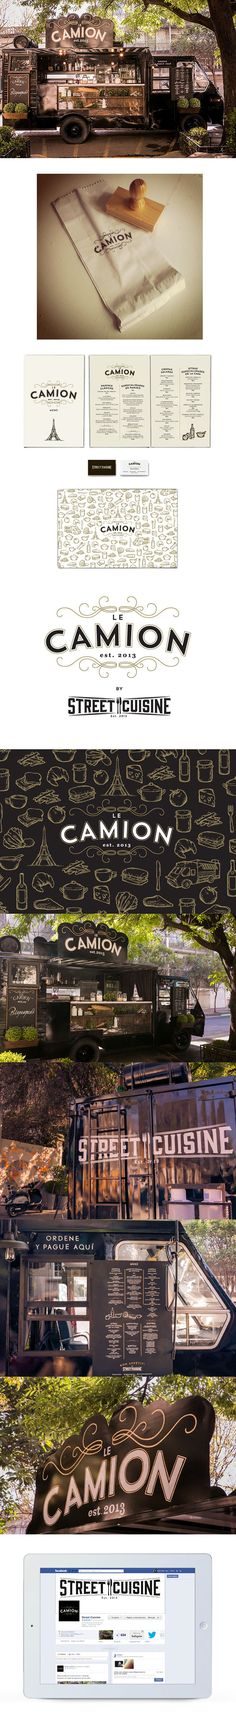 Le Camion on Behance